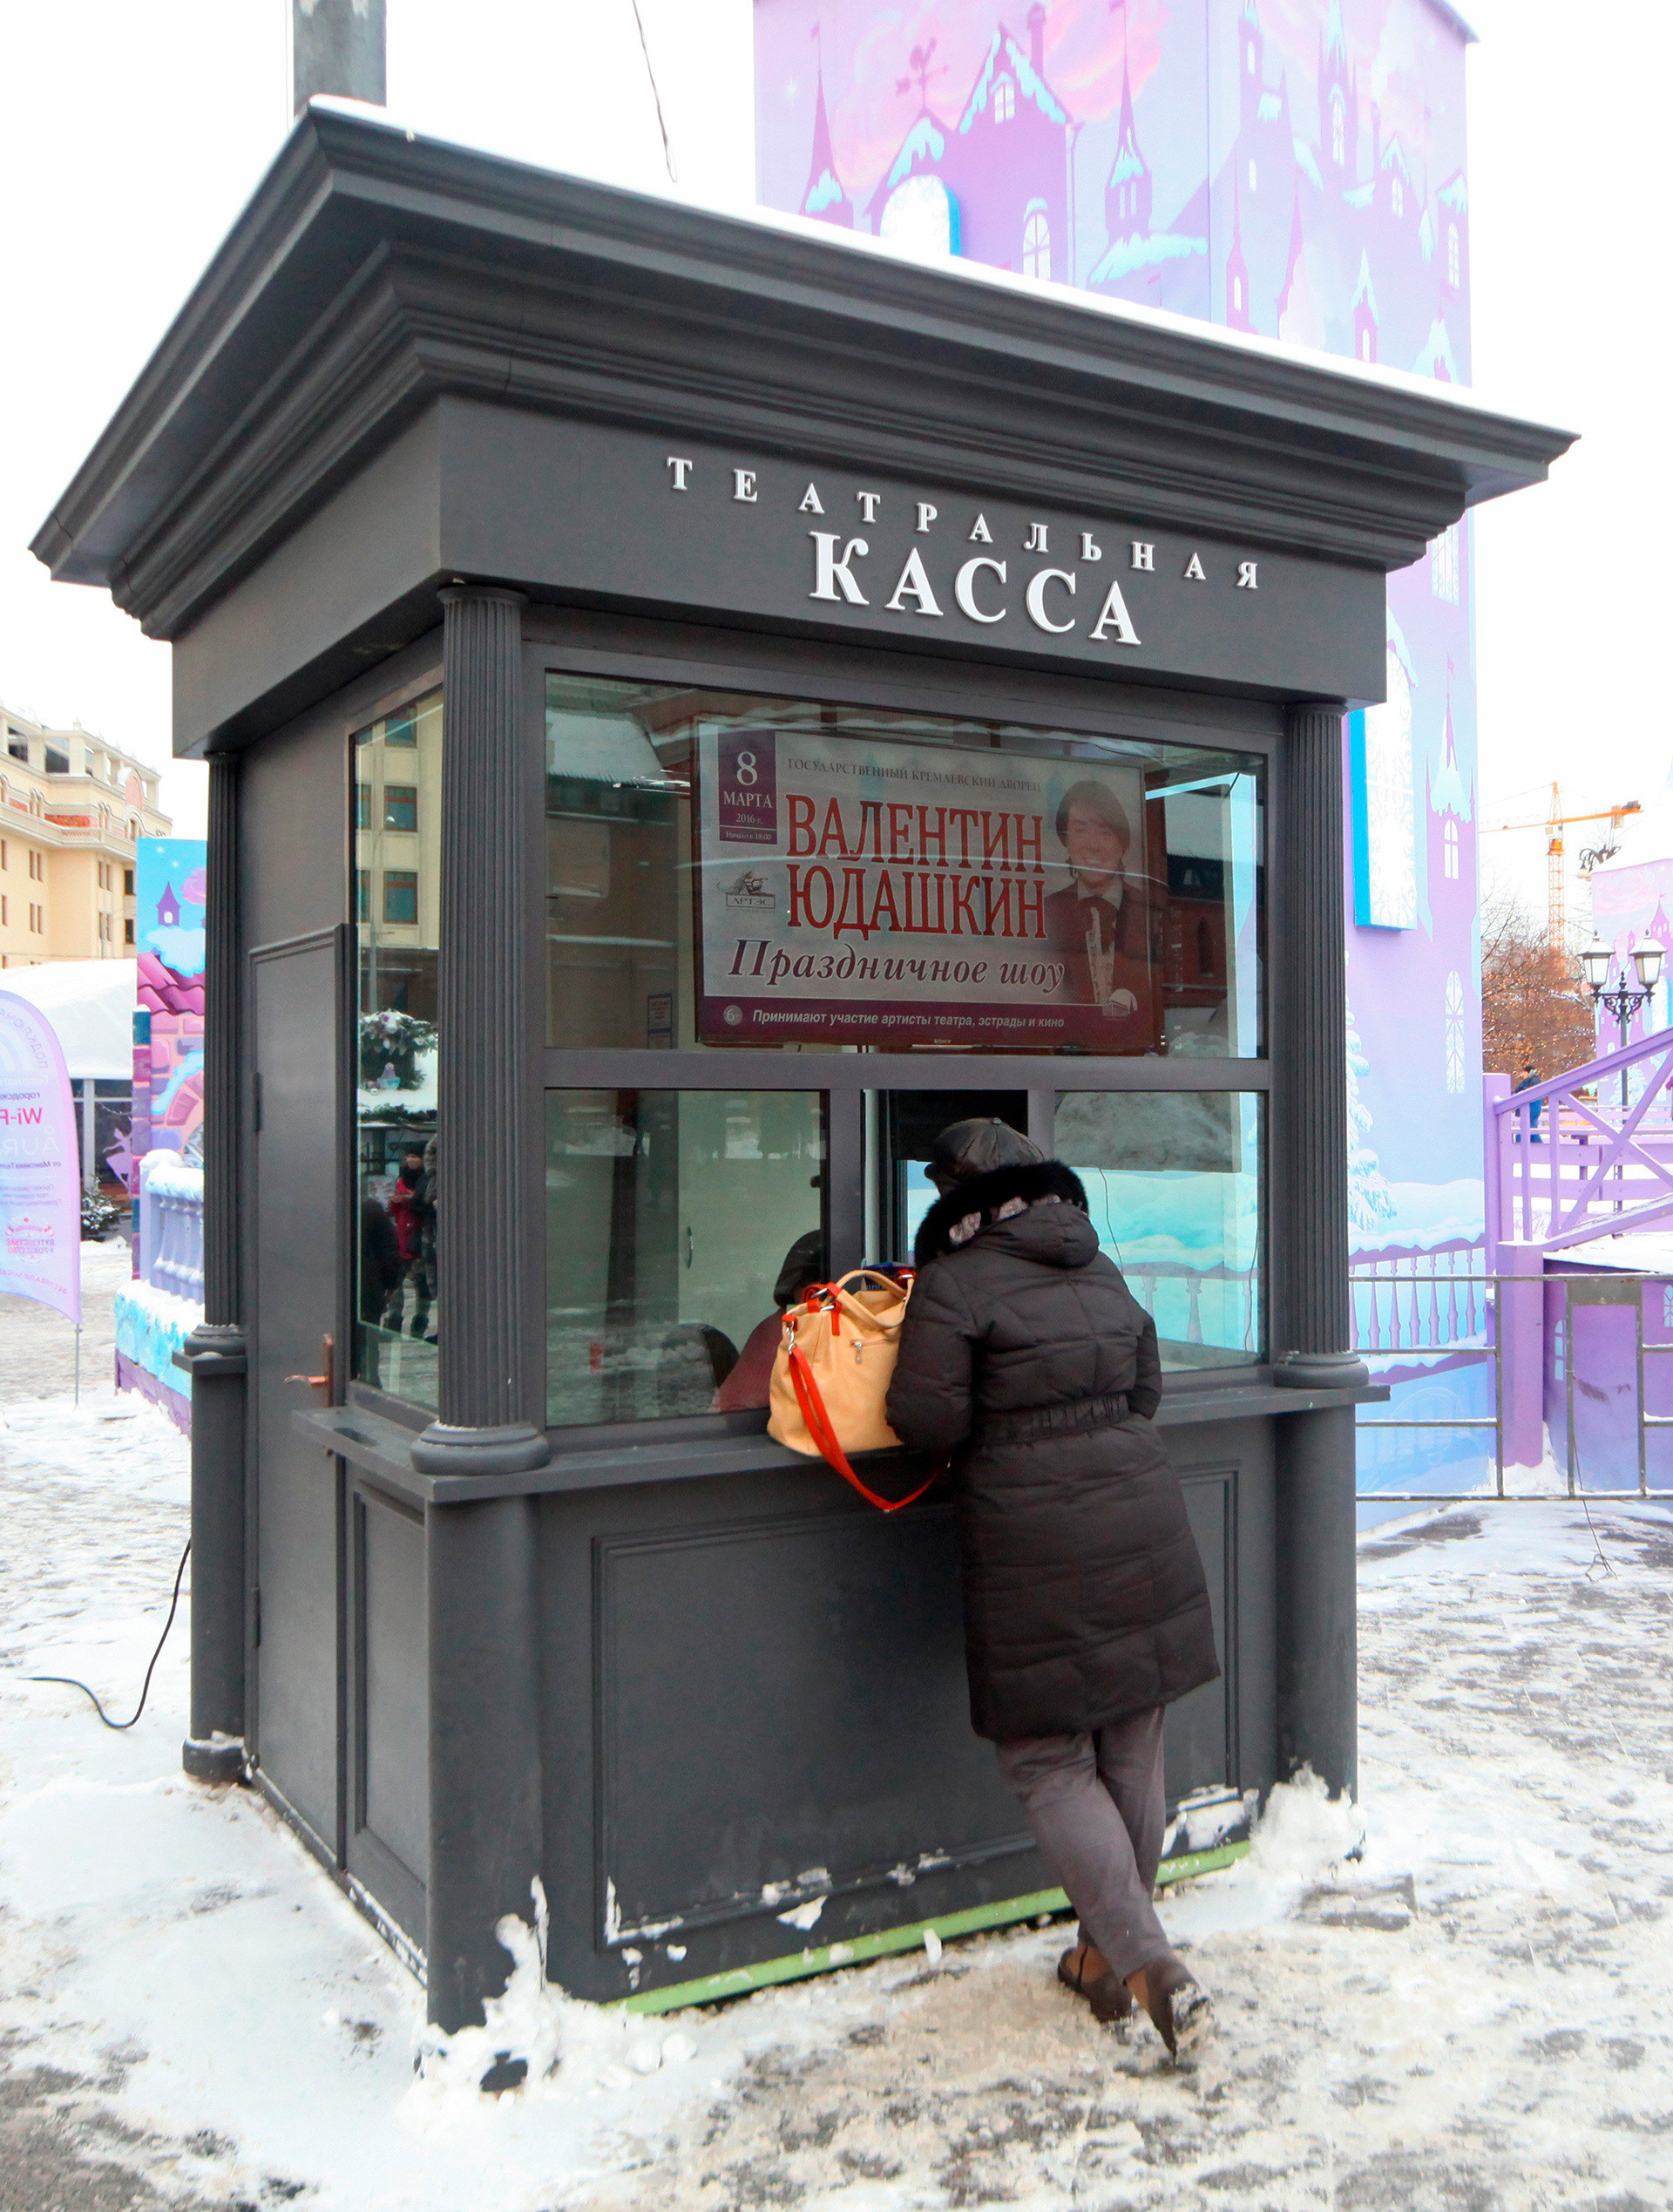 You can find the theatrical kiosk everywhere in Moscow.